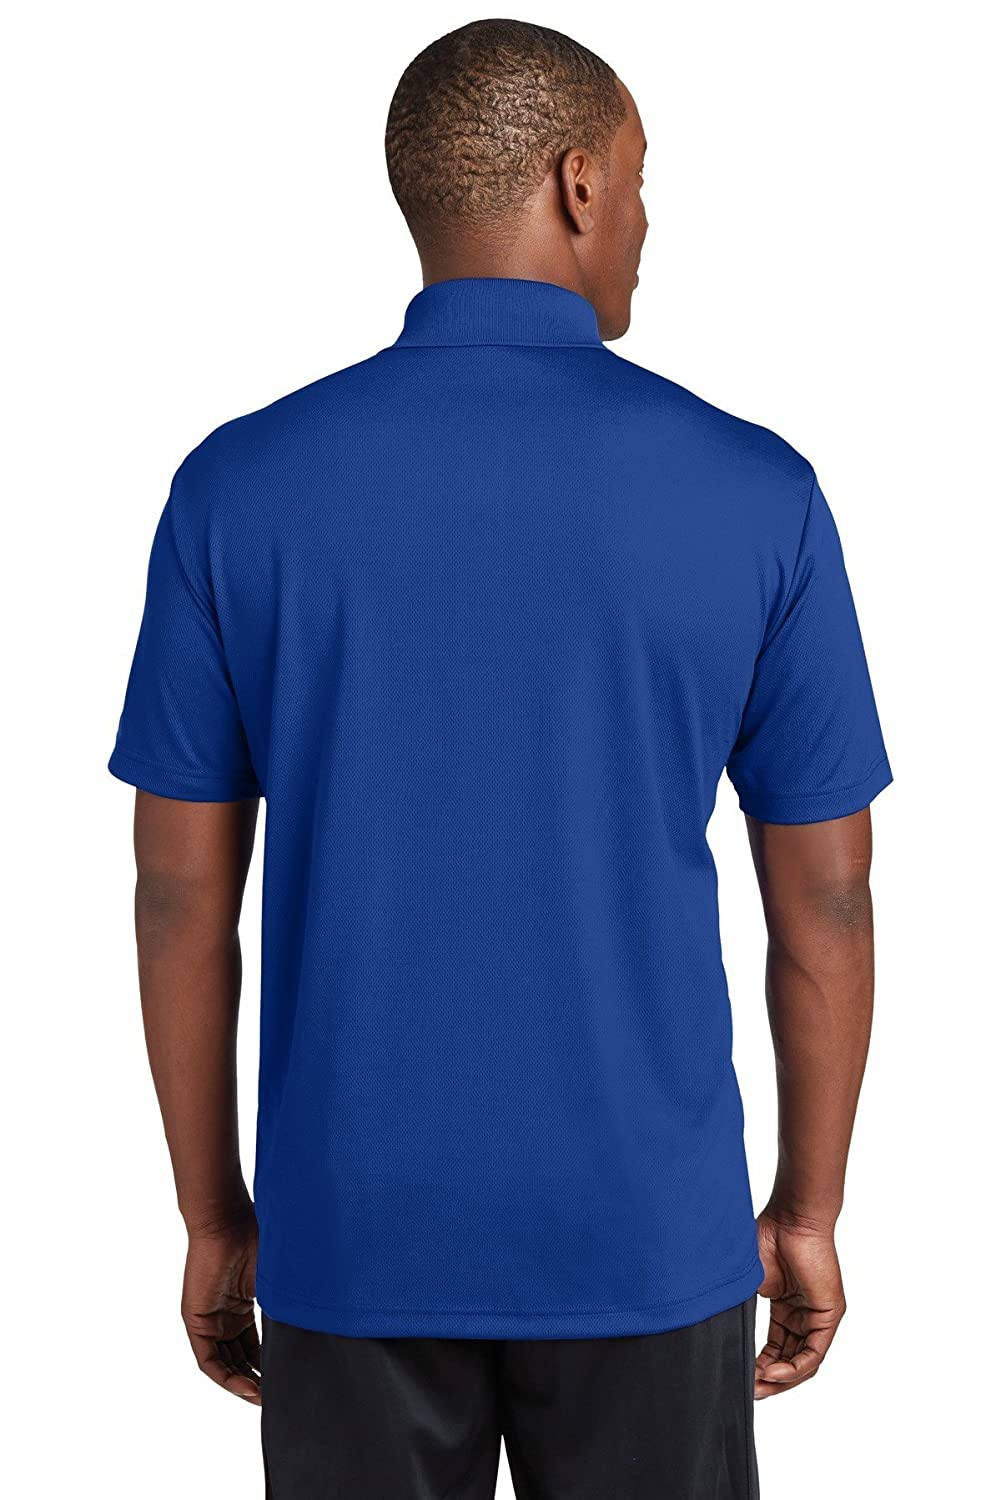 b597624a3 Amazon.com: Sport-Tek PosiCharge RacerMesh Polo. ST640: Clothing